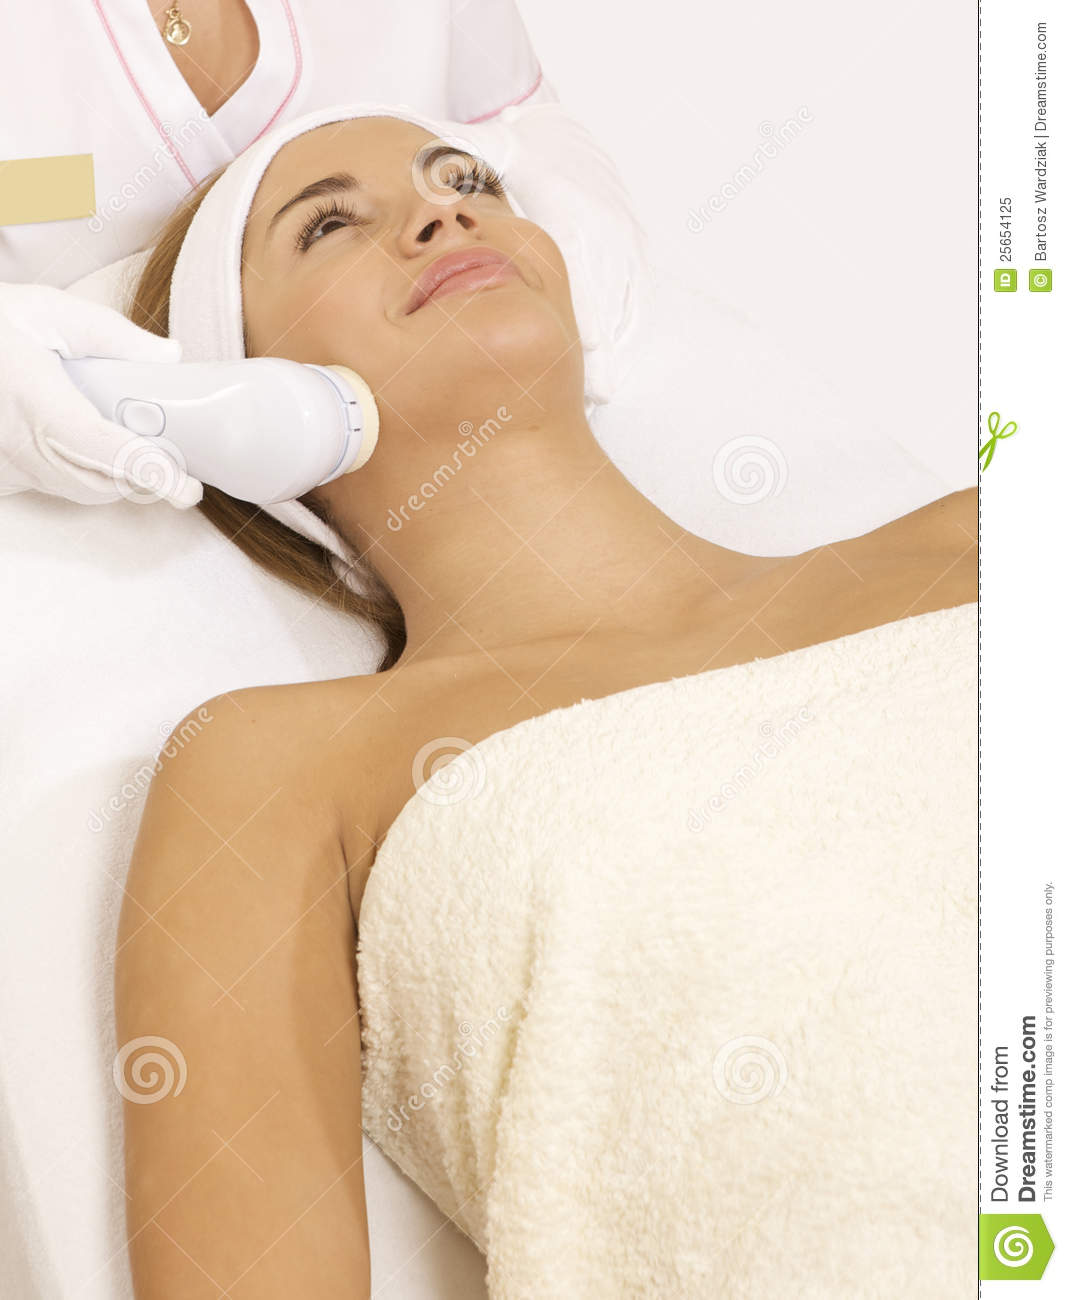 Elements Laser Spa Prices